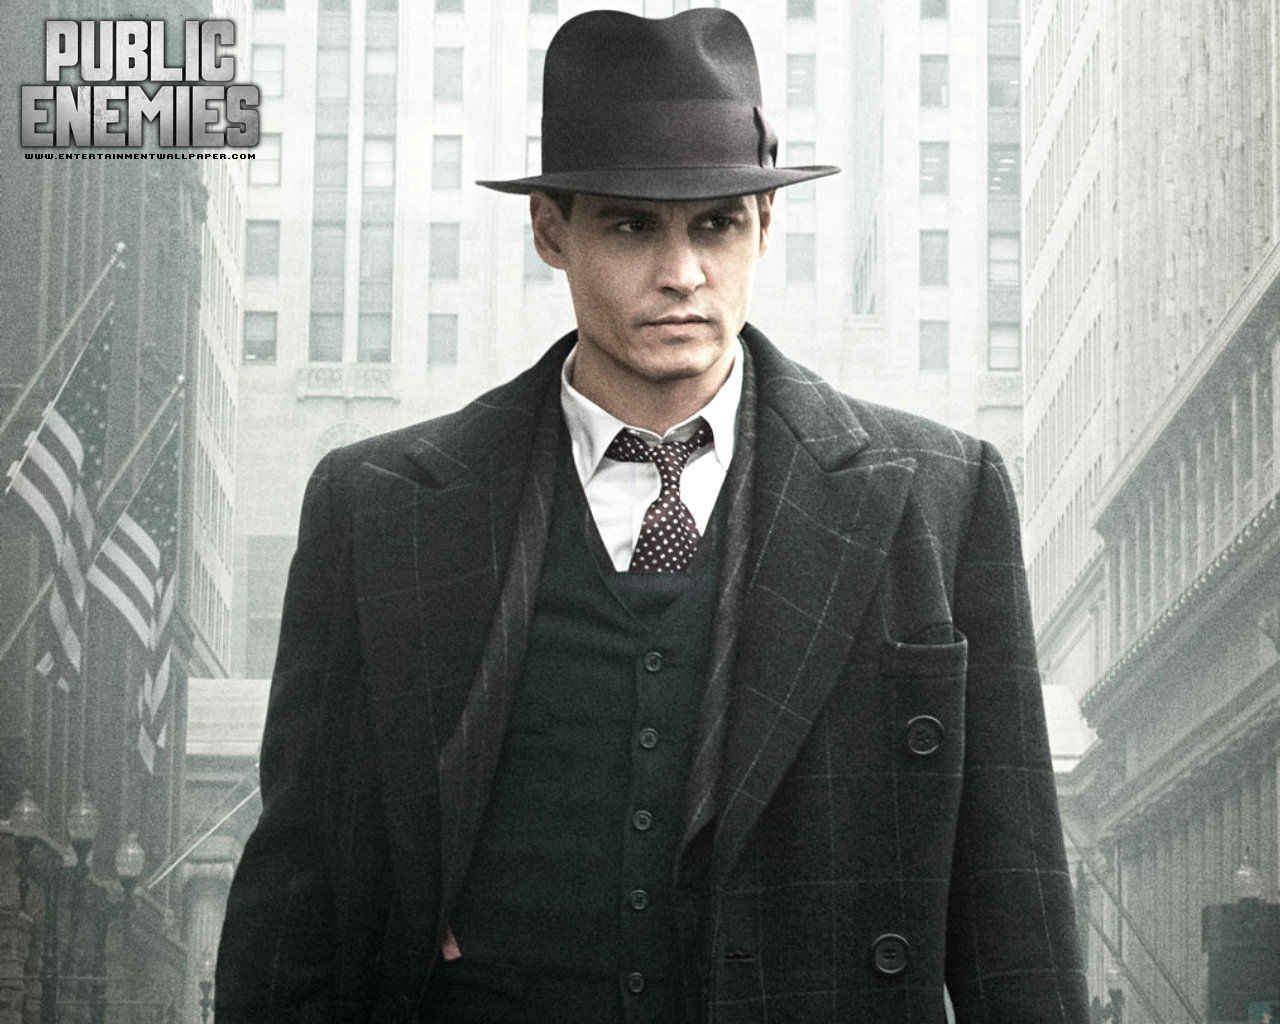 Johnny Depp - Public Enemies